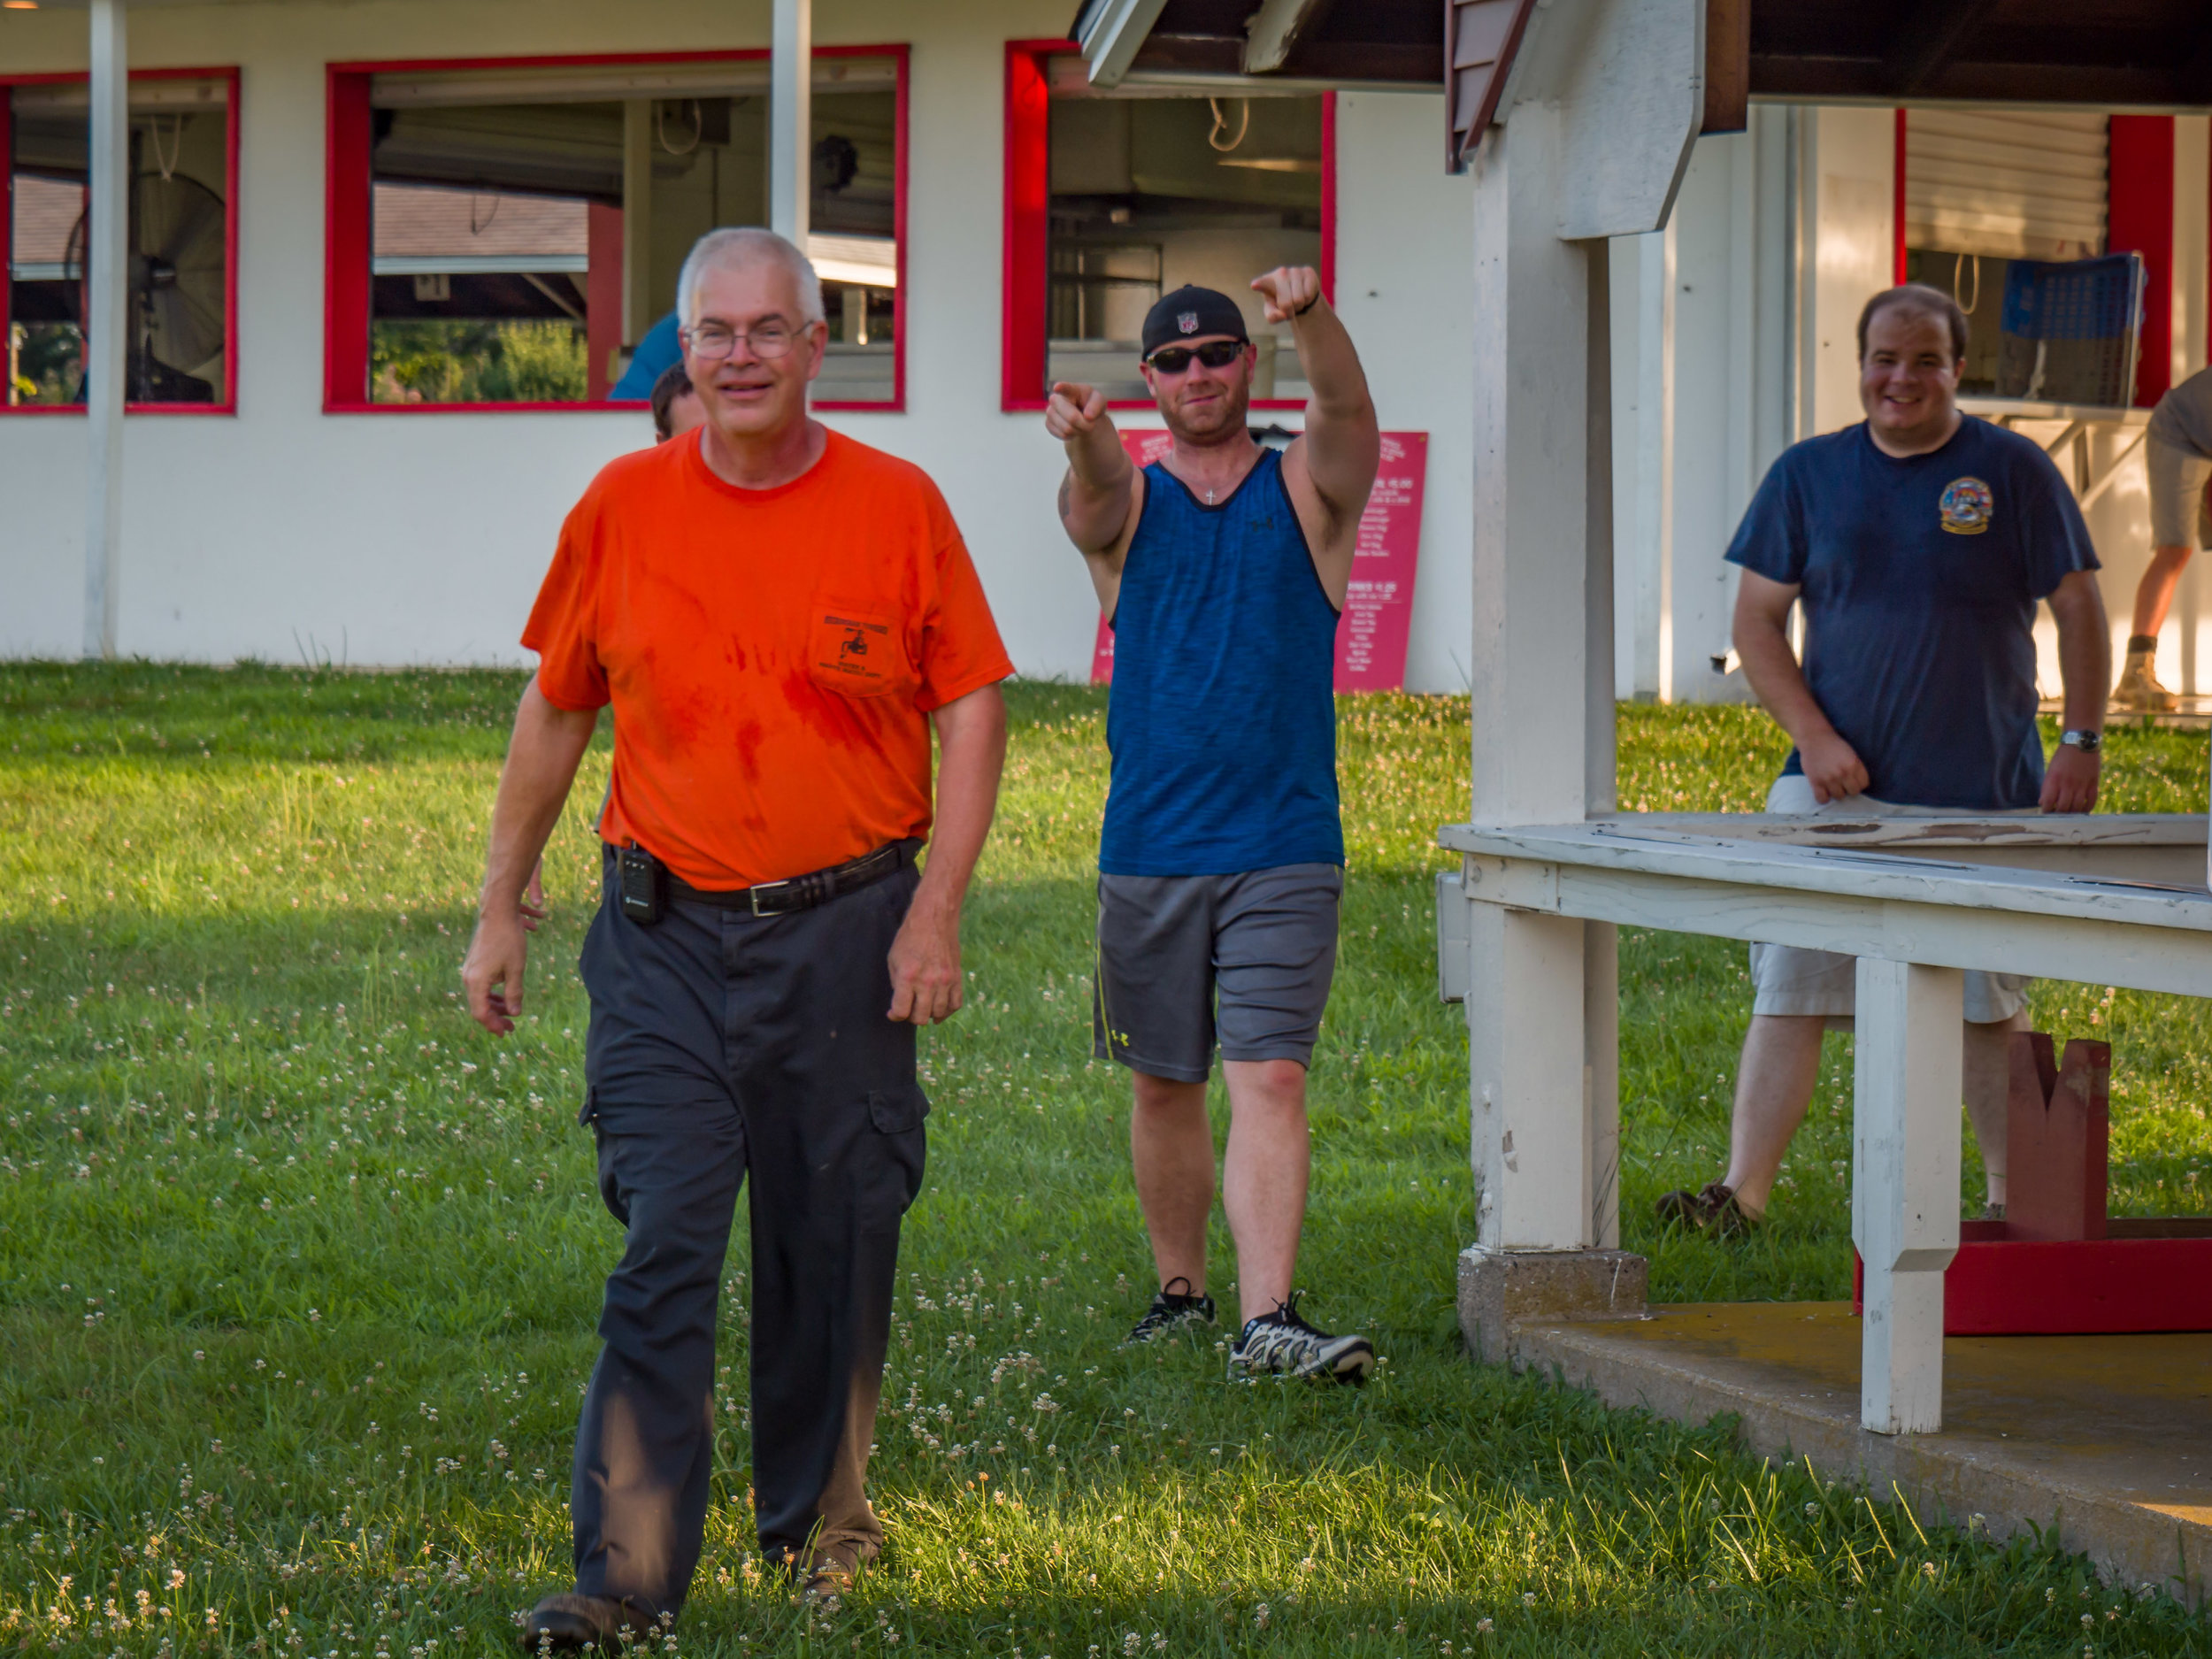 10 - 2018 Carnival Clean-up - 20180710 - untitled-7108803.jpg